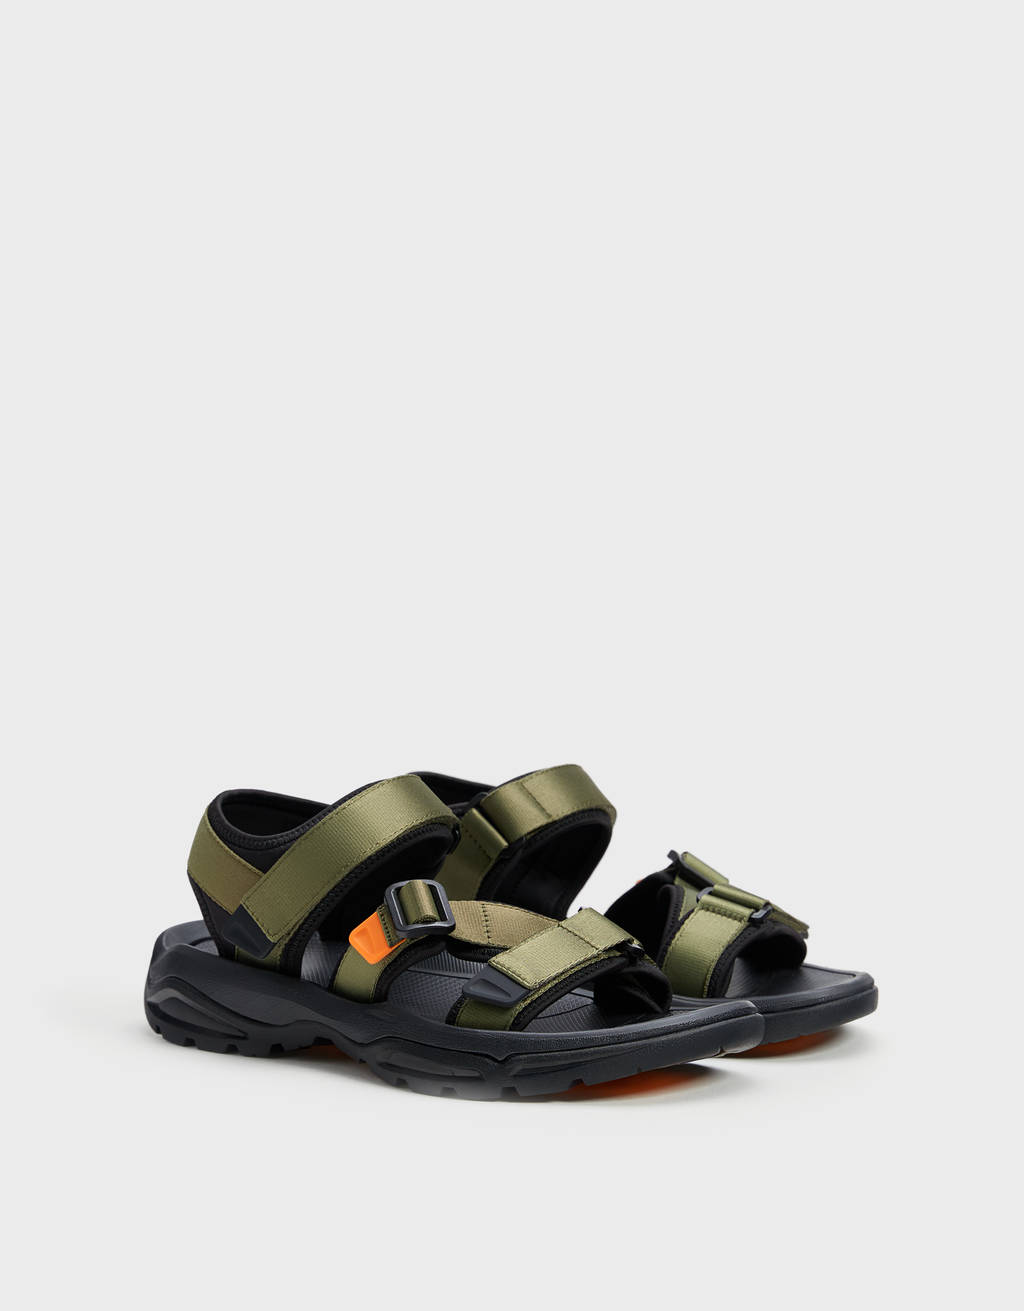 Men's contrast technical sandals